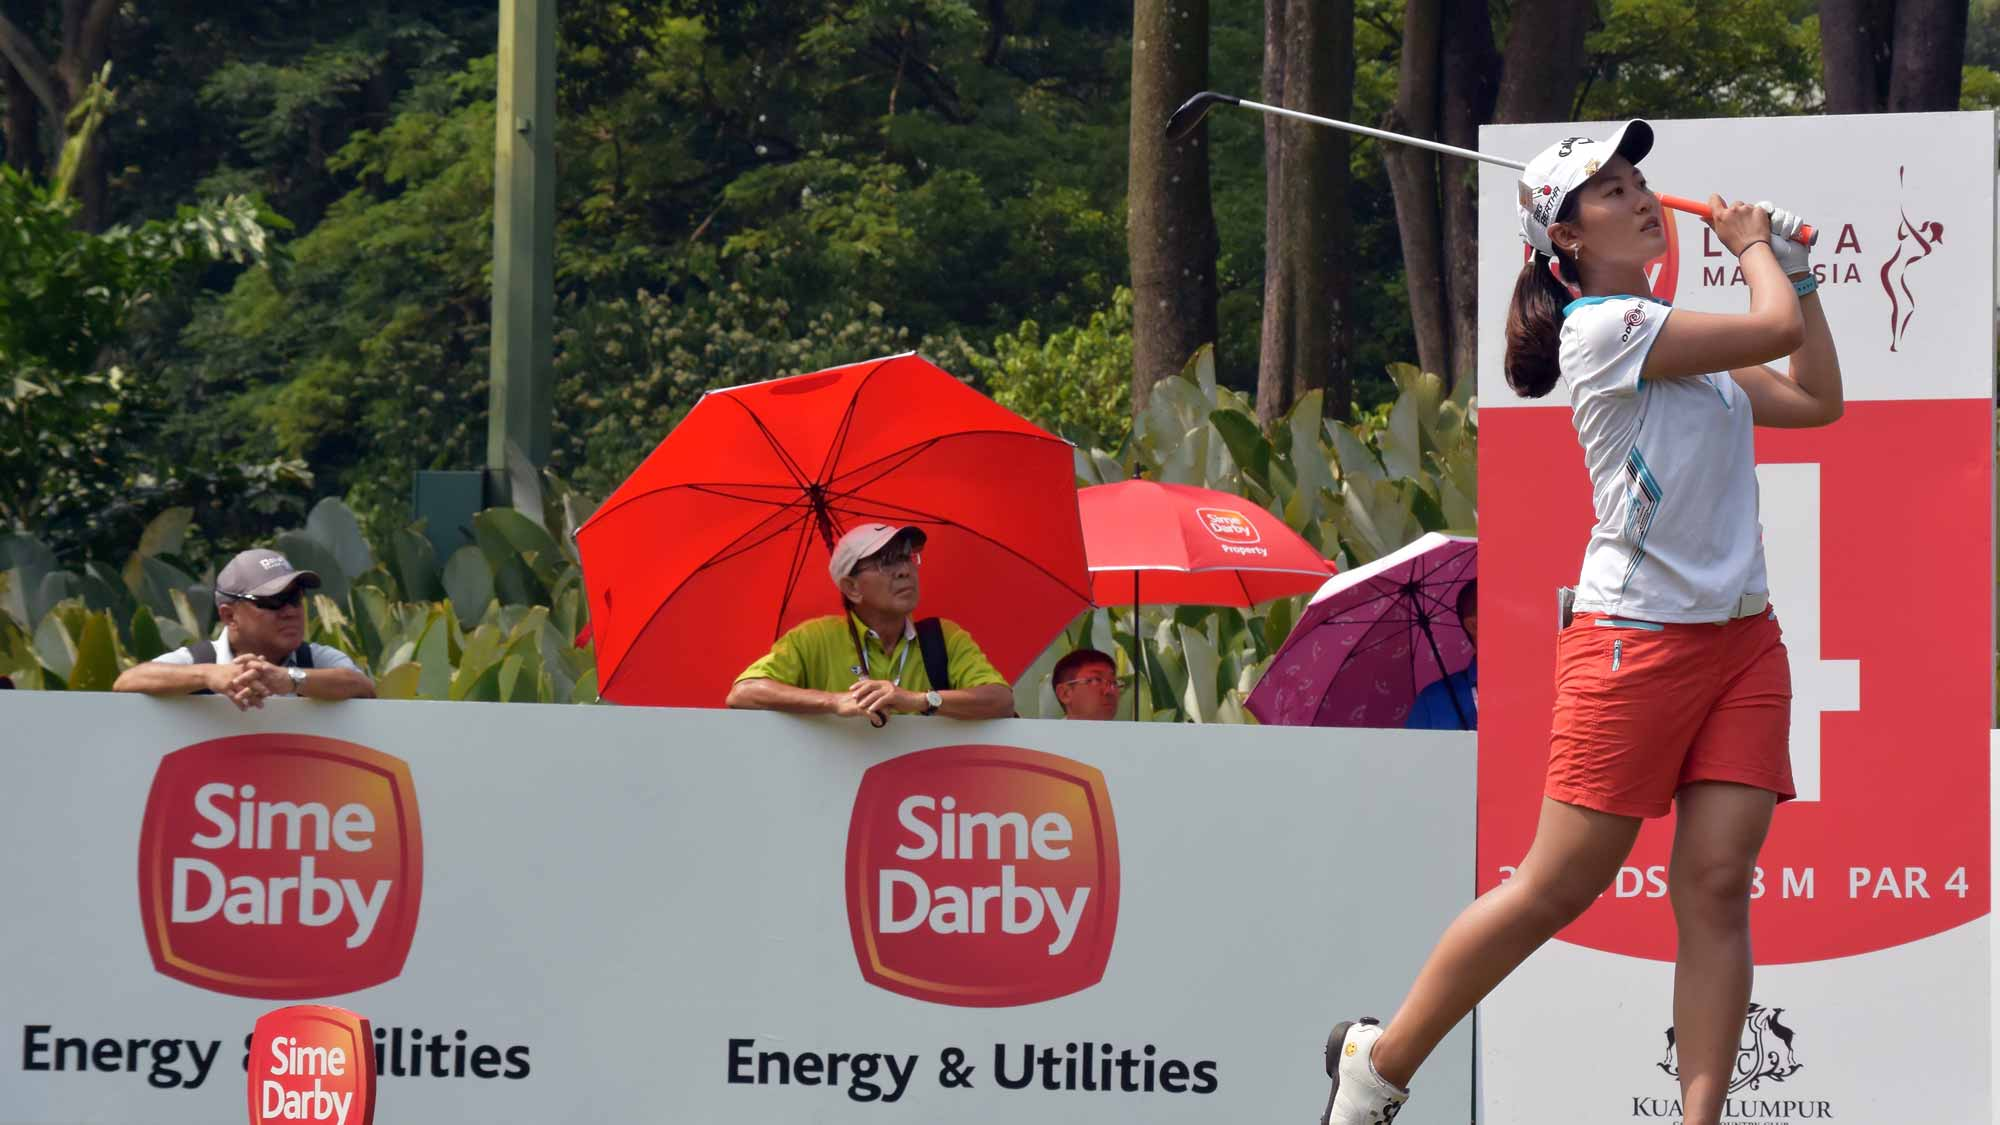 Xi Yu Lin of China plays her tee shot on the 4th hole during round two of the Sime Darby LPGA Tour at Kuala Lumpur Golf & Country Club